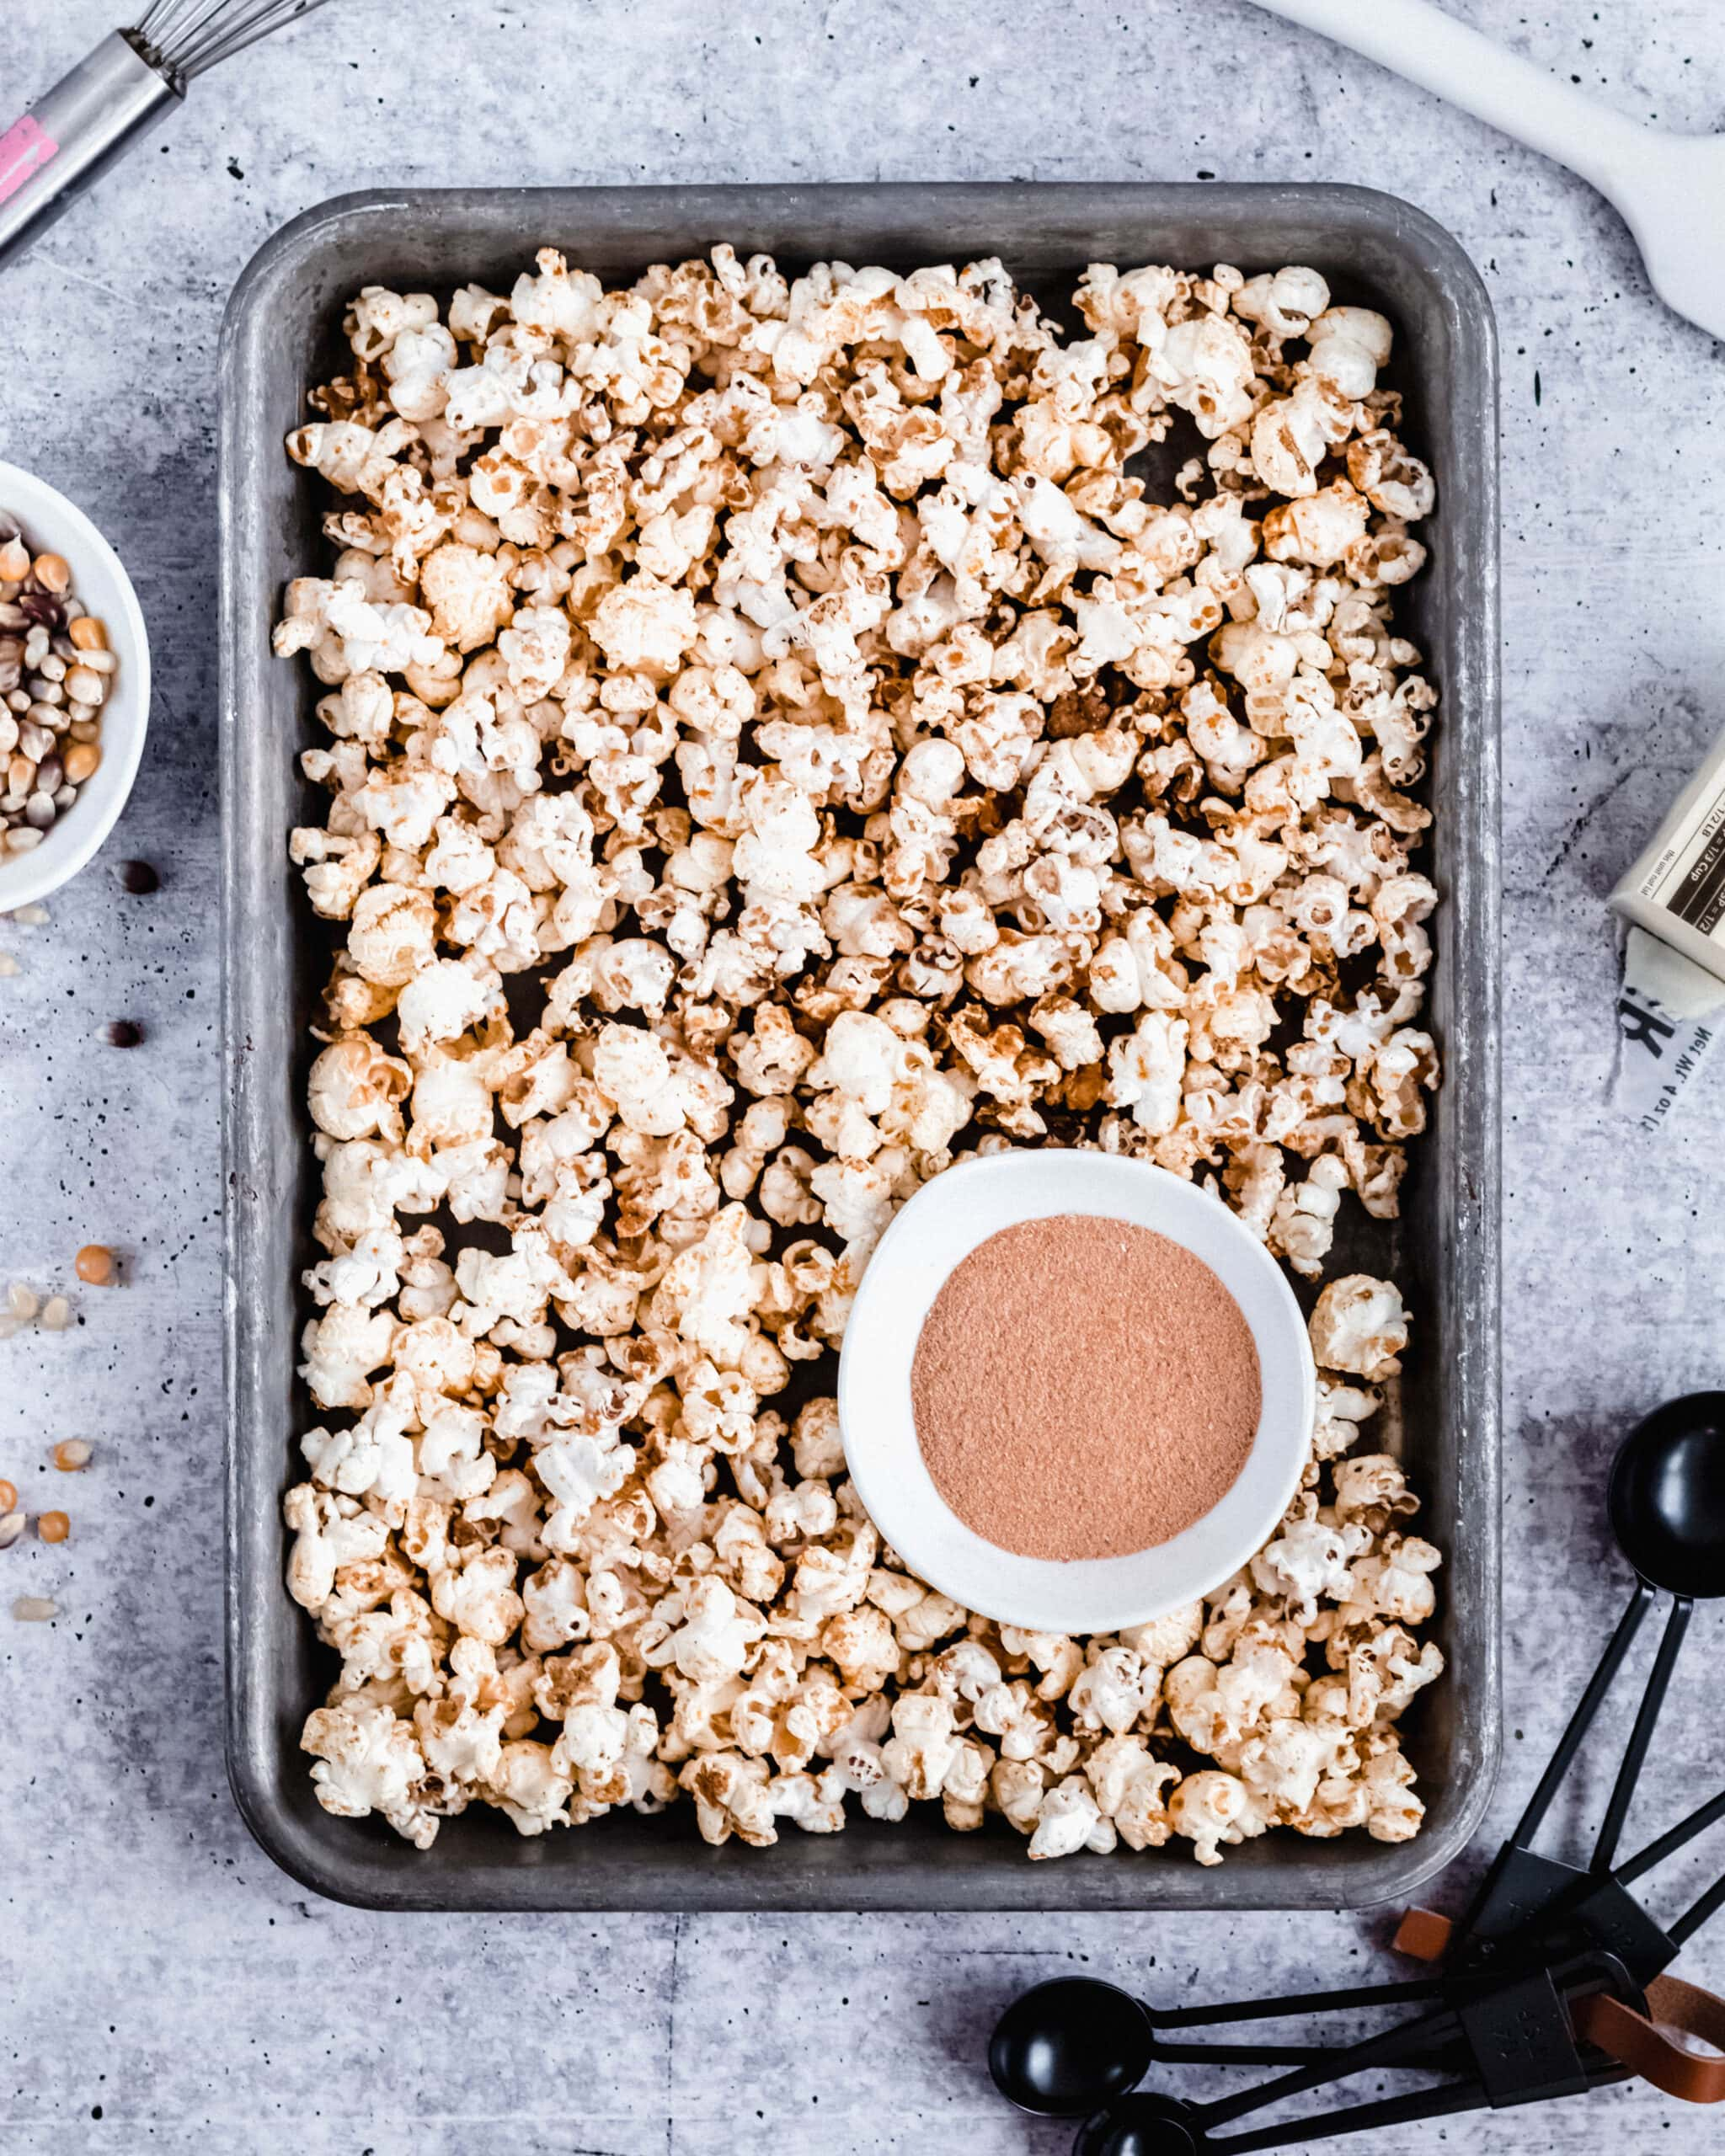 an overhead shot of a sheet pan filled with chex mix popcorn. a small bowl of seasoning mix rests on top of it. a small bowl of unpopped kernels is next to the sheet pan on the left.